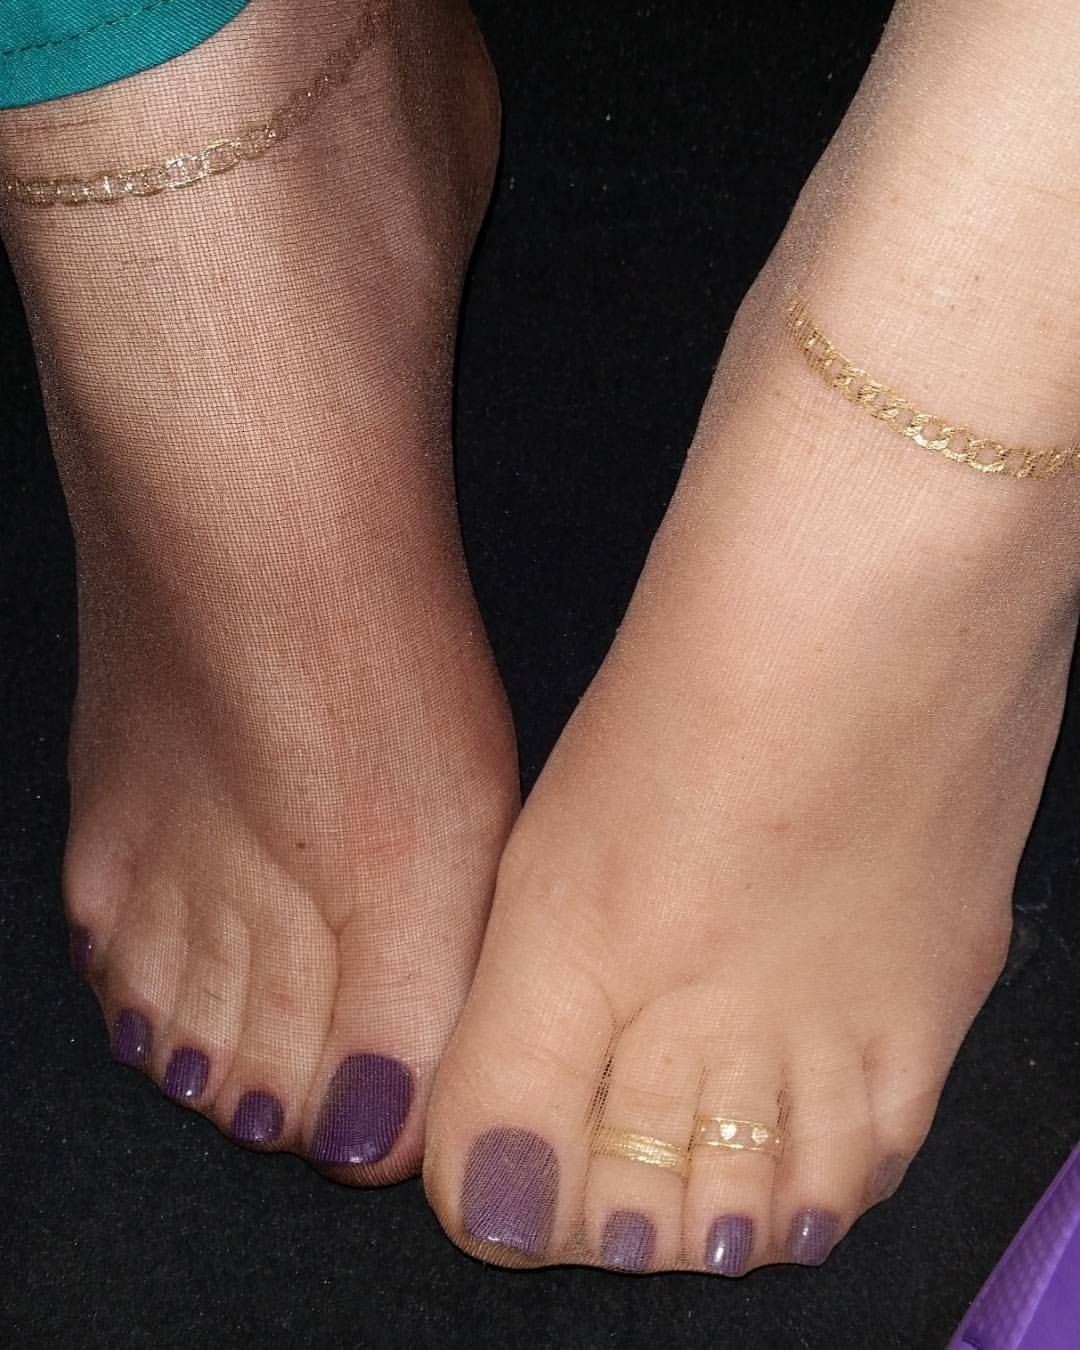 Pinjeff Smith On Oh Them Beautiful Feet And Toes 2 | Pinterest Inside Most Popular Illusion Toe Rings (Gallery 6 of 15)